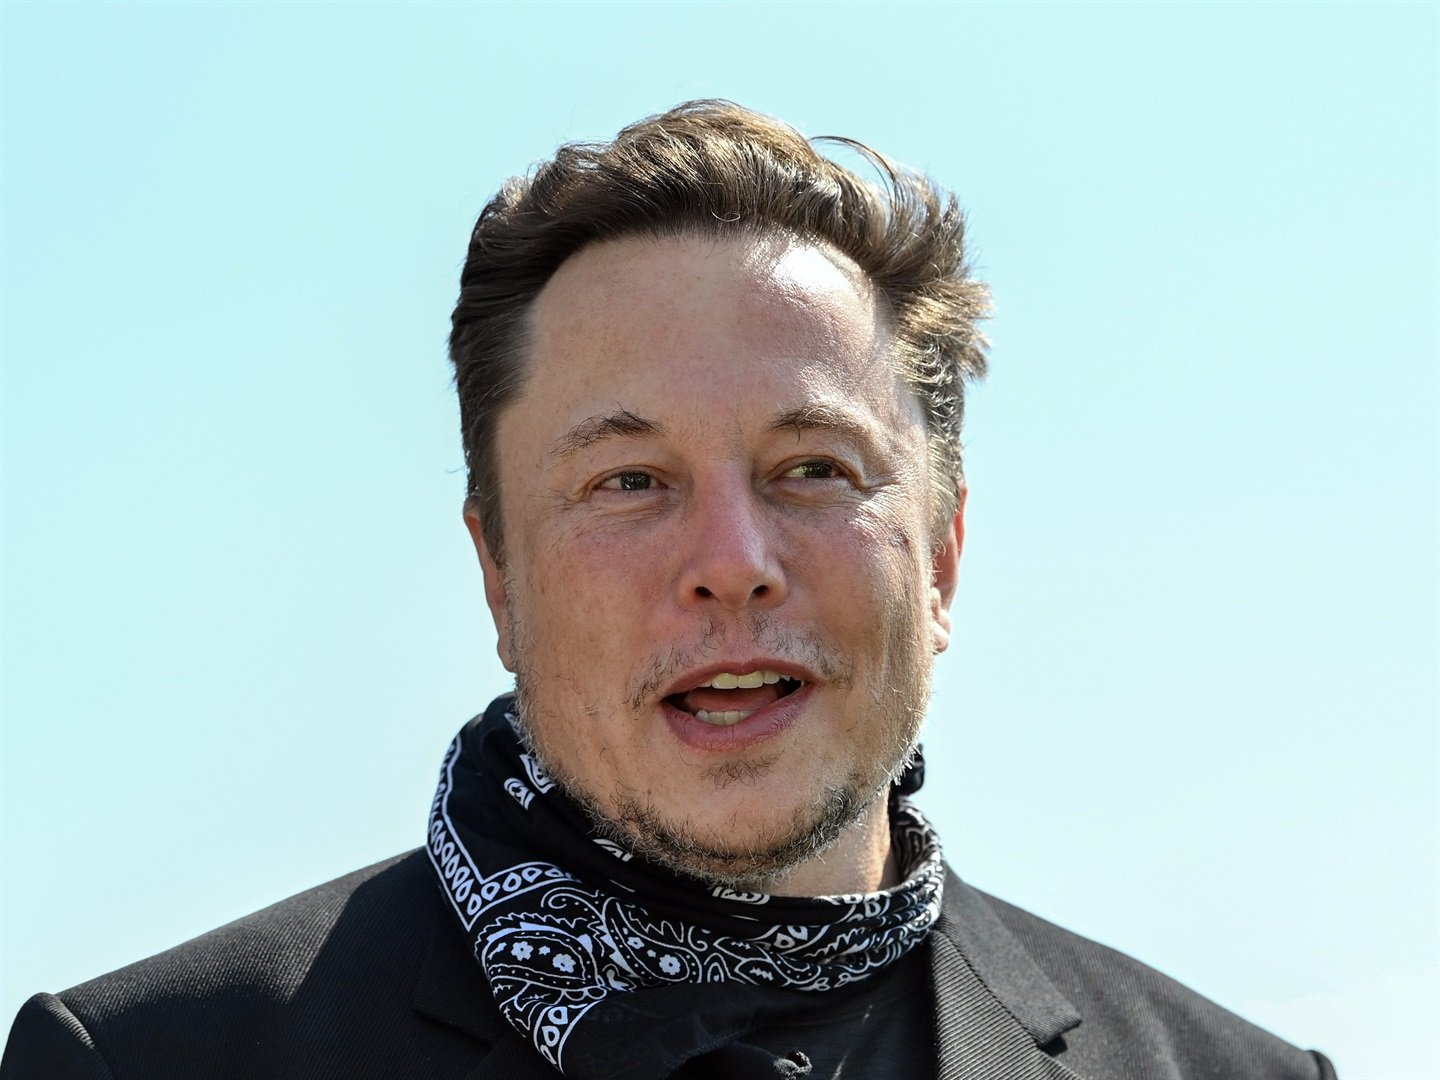 Elon Musk pulled 'last remaining house' off market after vowing to get rid of all 'physical possessions' - Business Insider South Africa